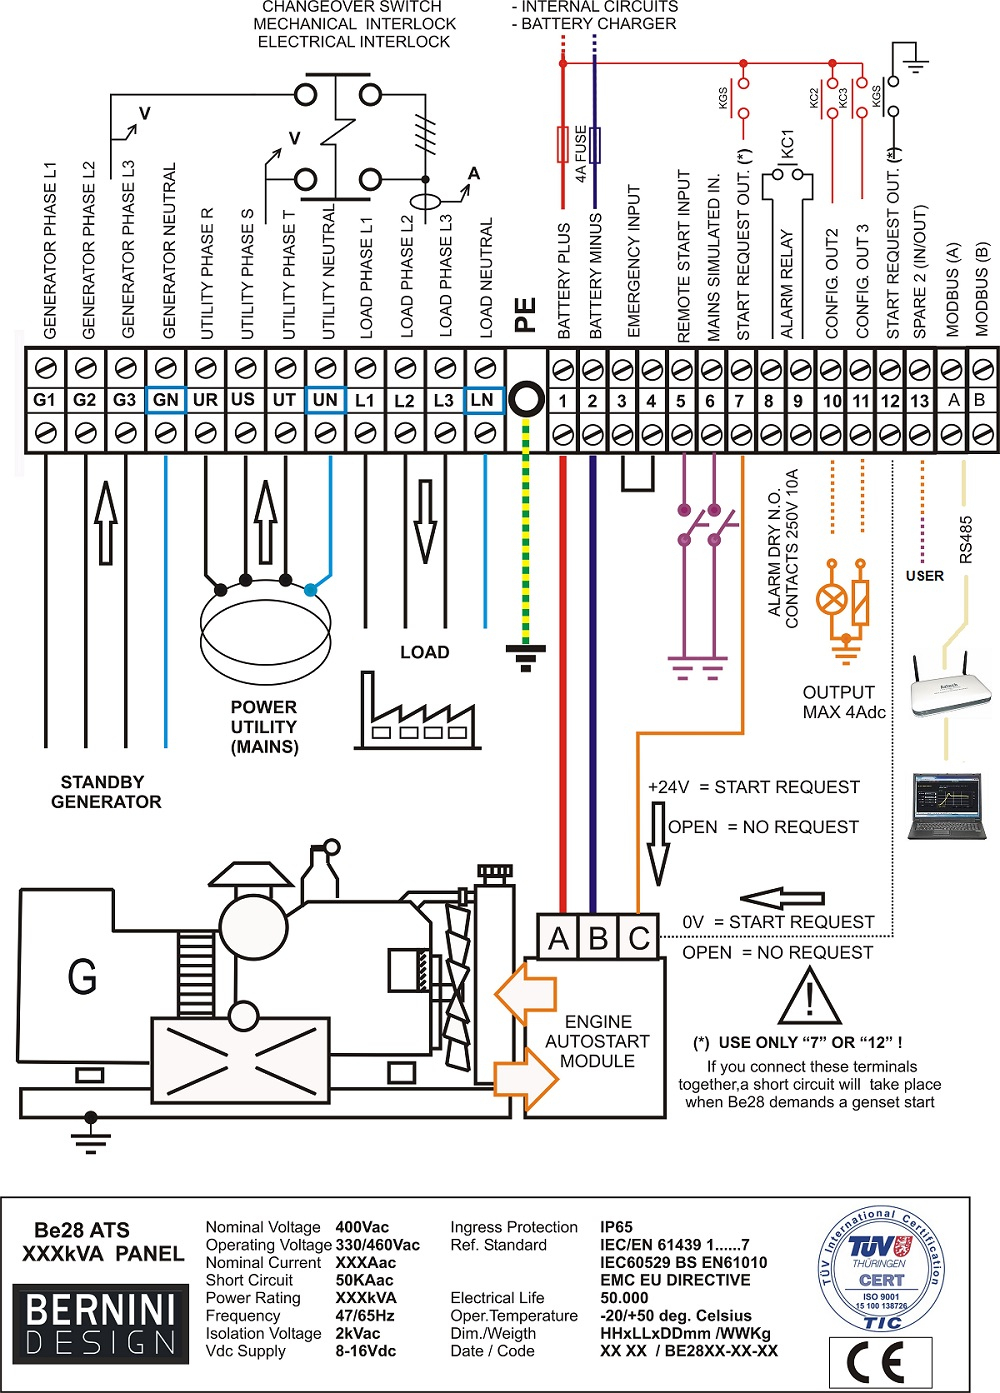 Wire Diagram For Transfer Switch | Wiring Library - Generac Generator Wiring Diagram